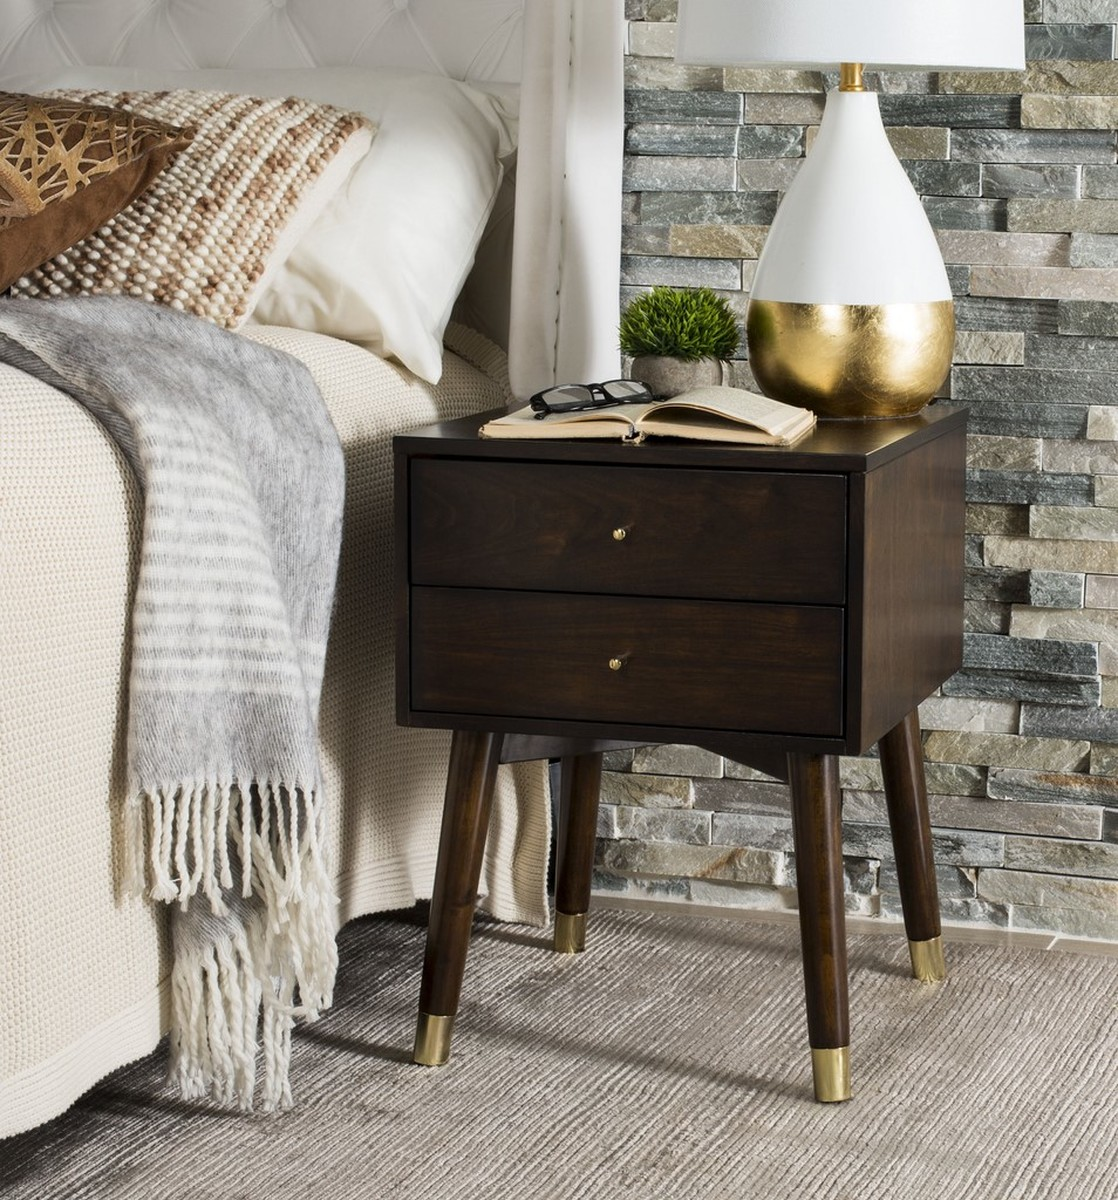 Fox6234e Accent Tables Nightstands Furniture By Safavieh